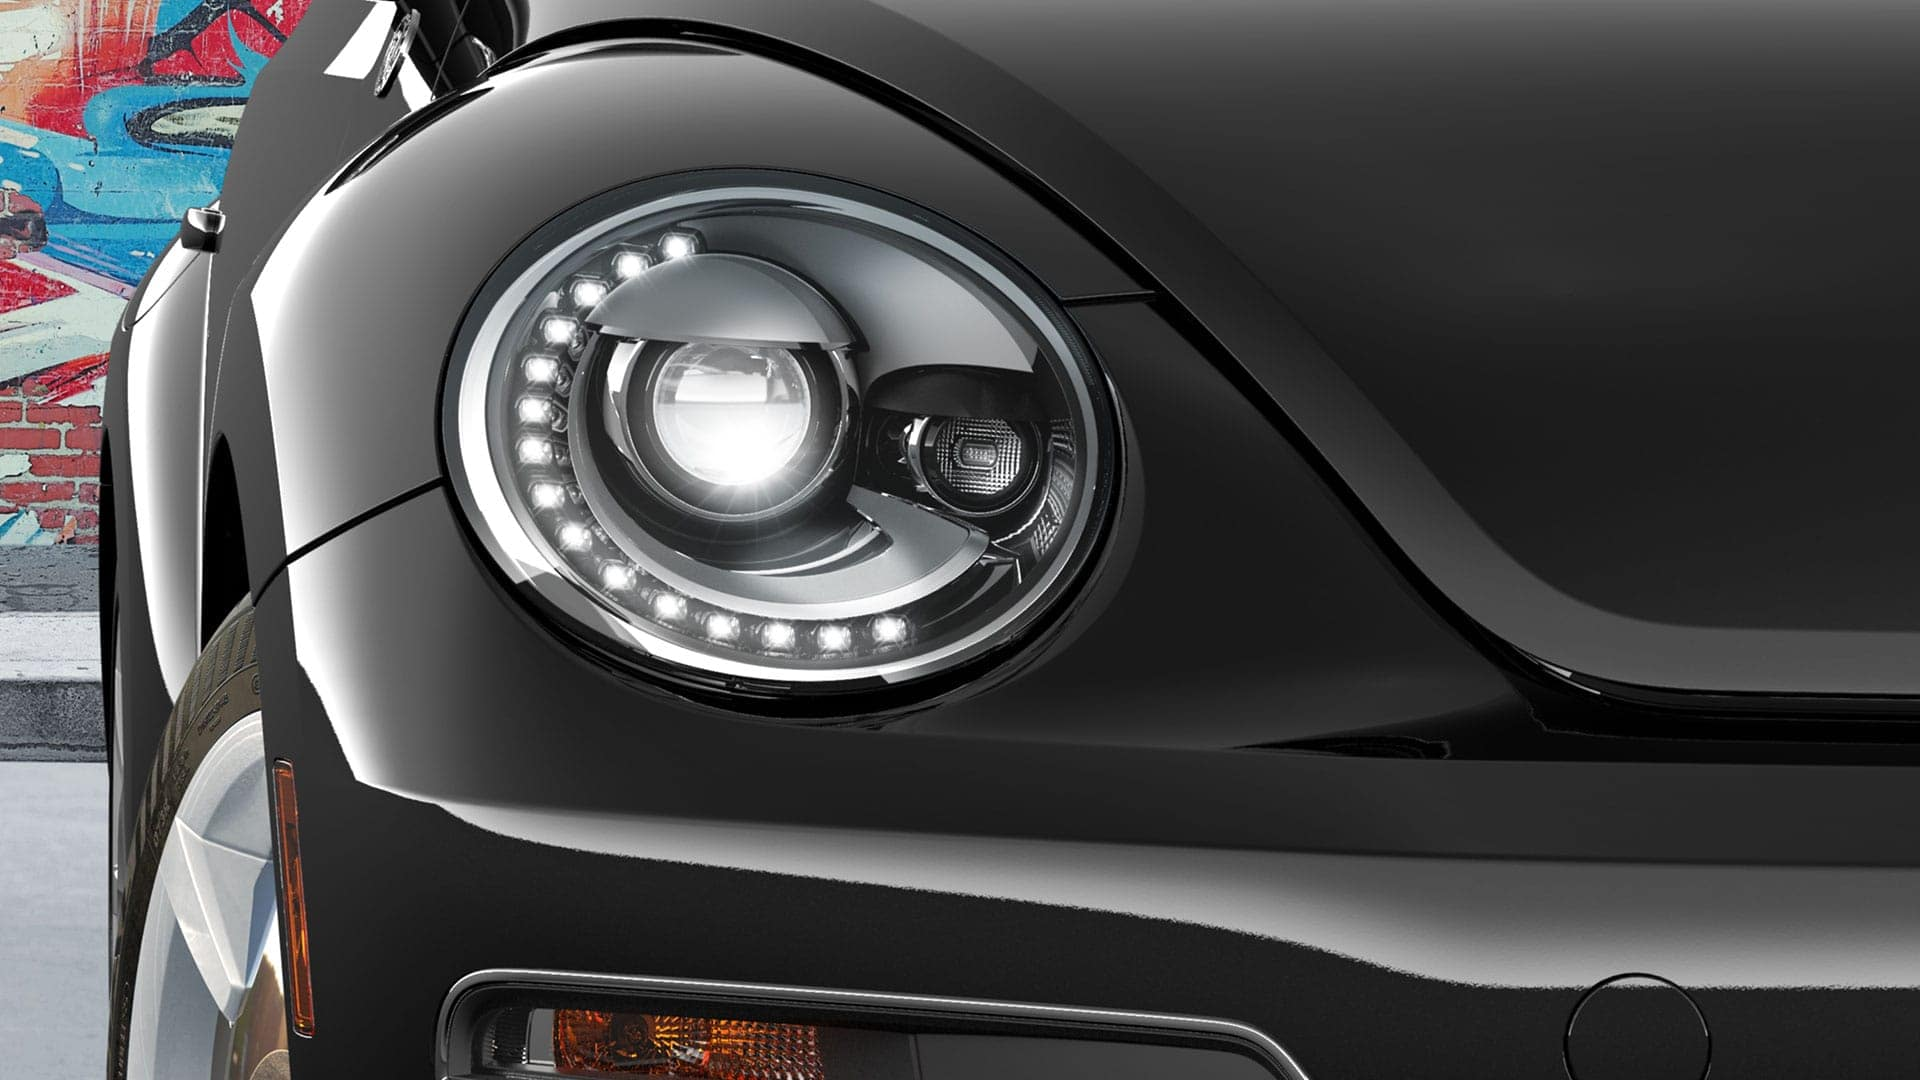 2019 VW Beetle LED lights